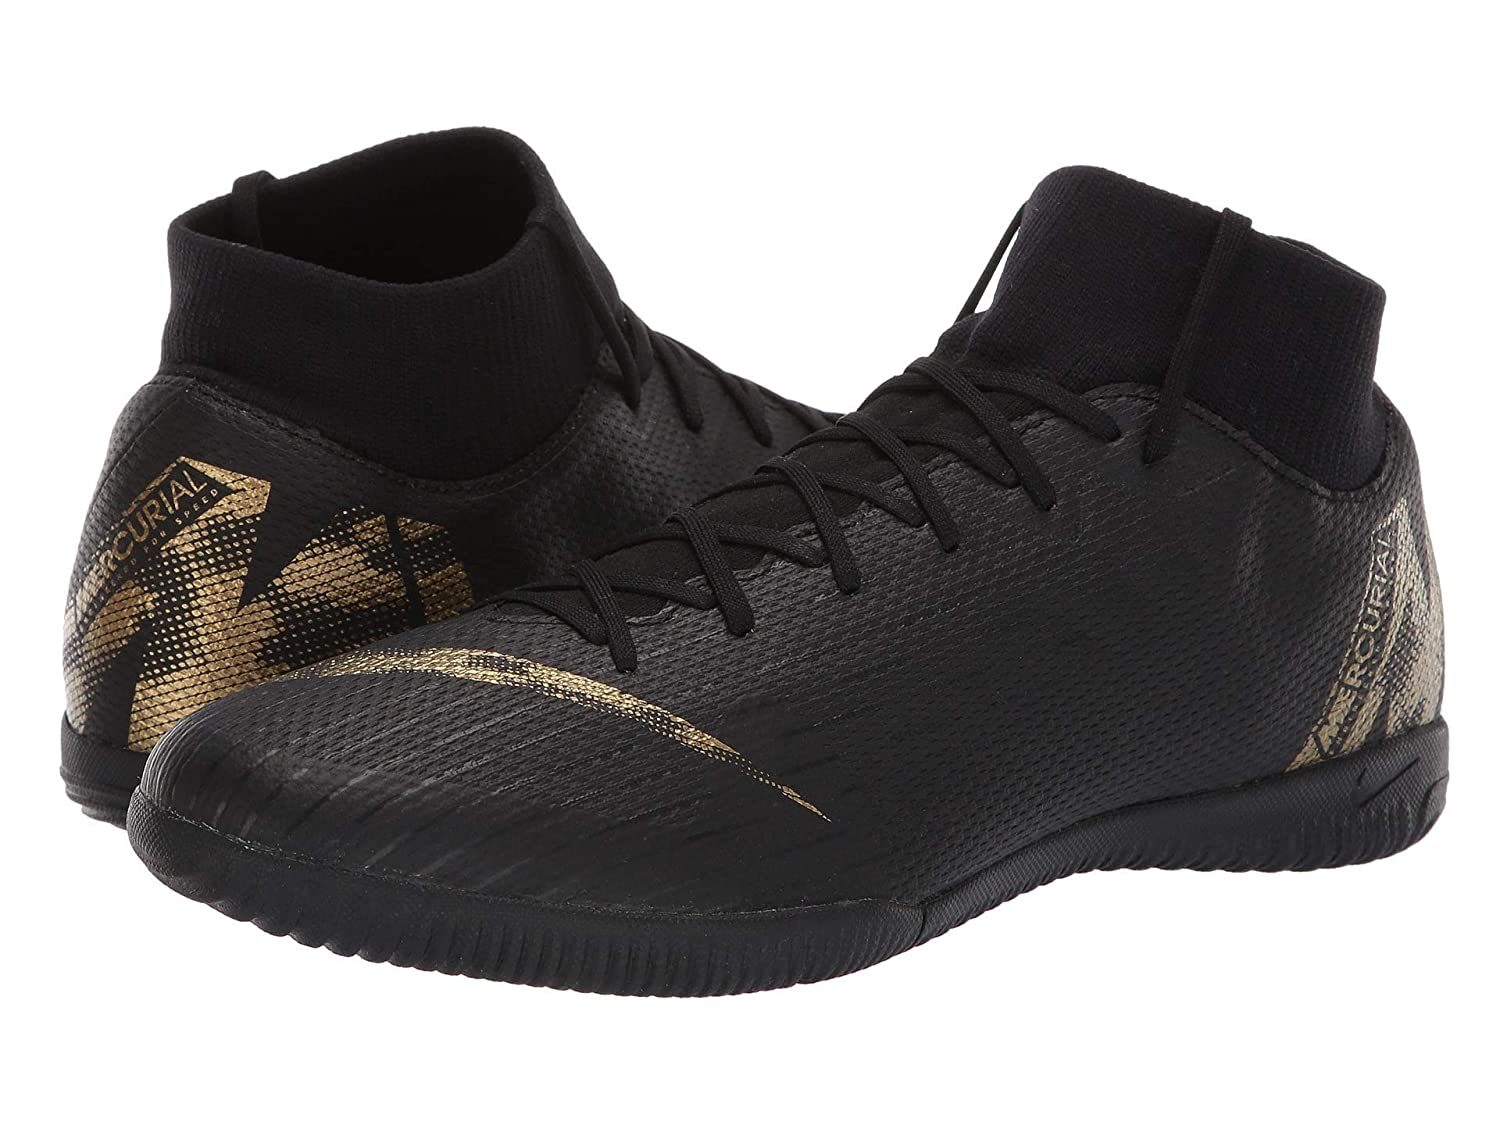 Noir Metallic Vivid or Nike Superflyx 6 Academy IC, Chaussures de Football Homme 44.5 EU